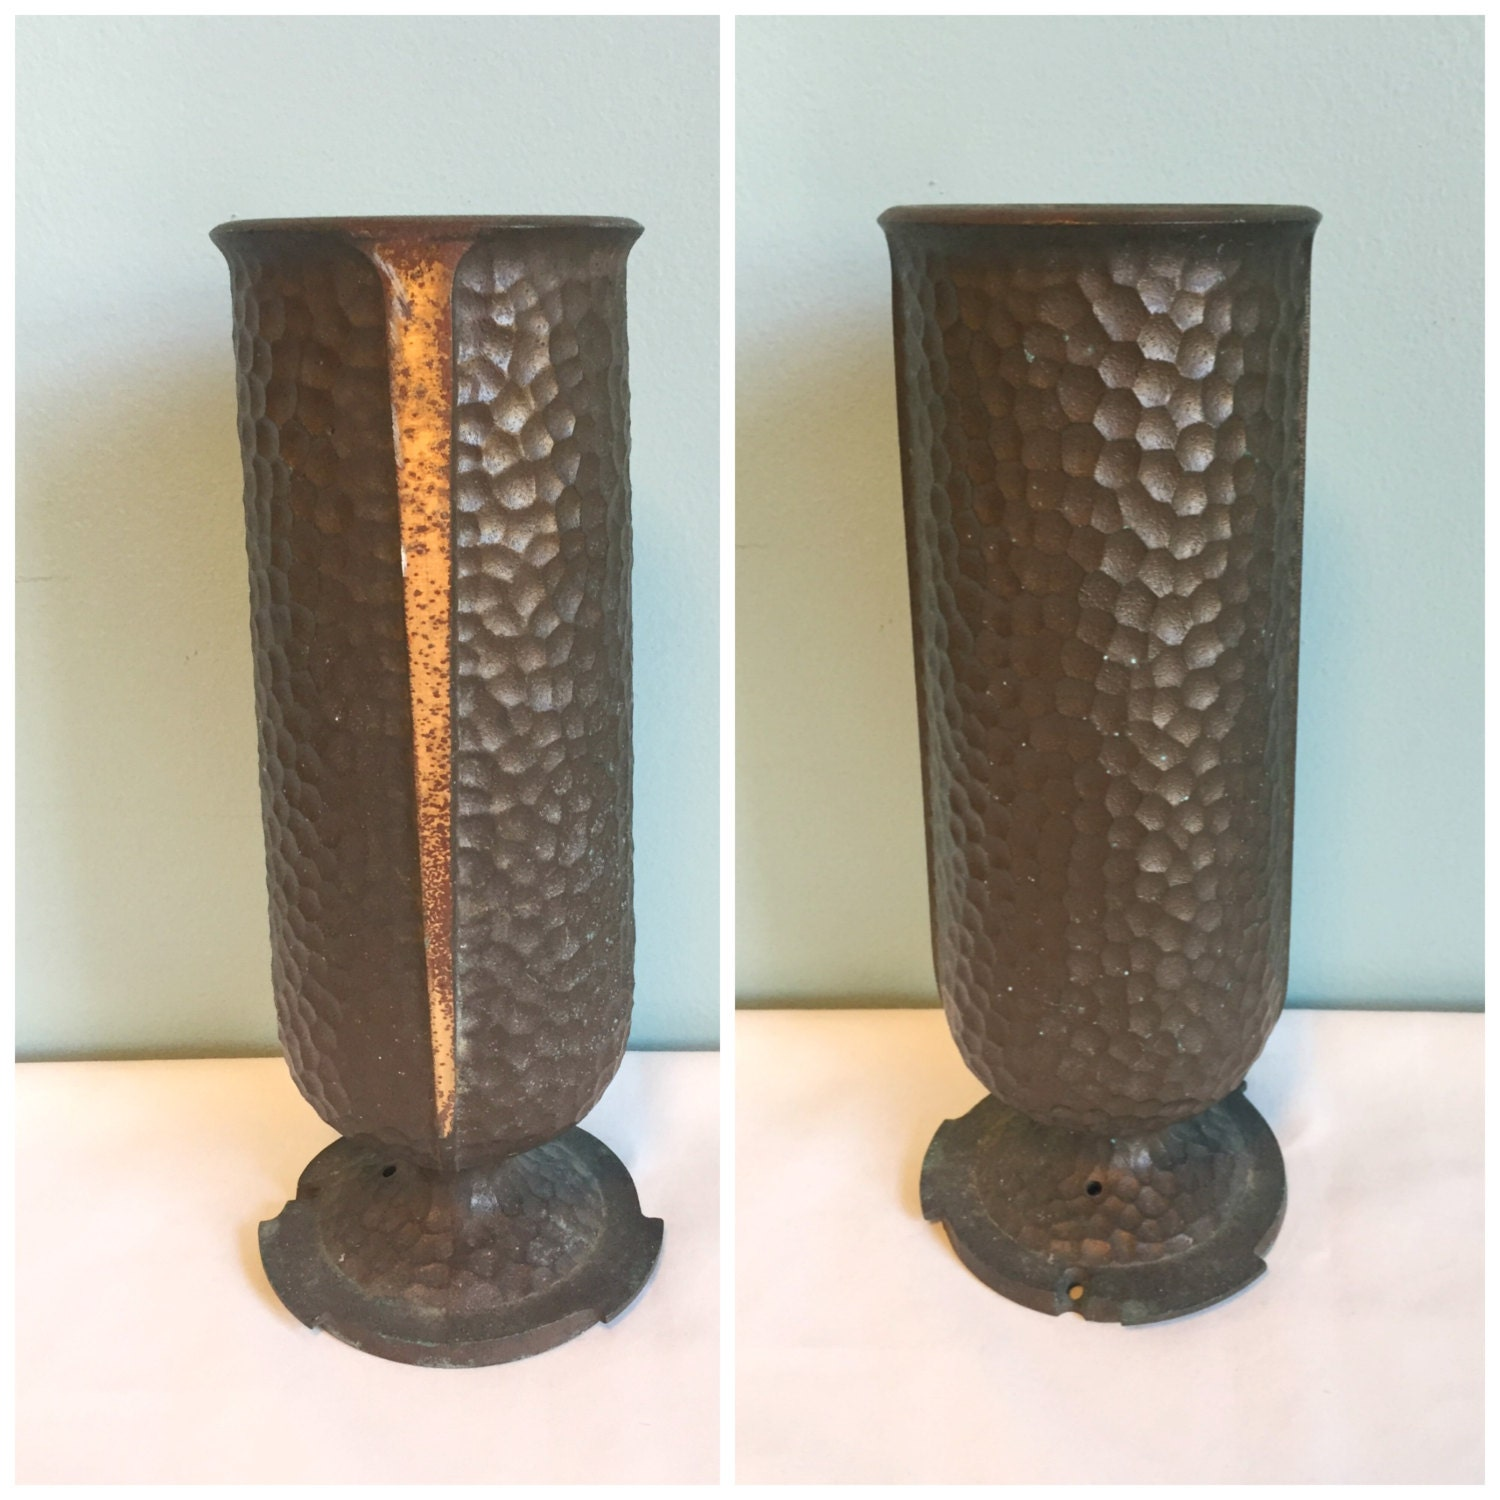 Vintage Antique Hammered Metal Cemetery Vase Retro Graveyard